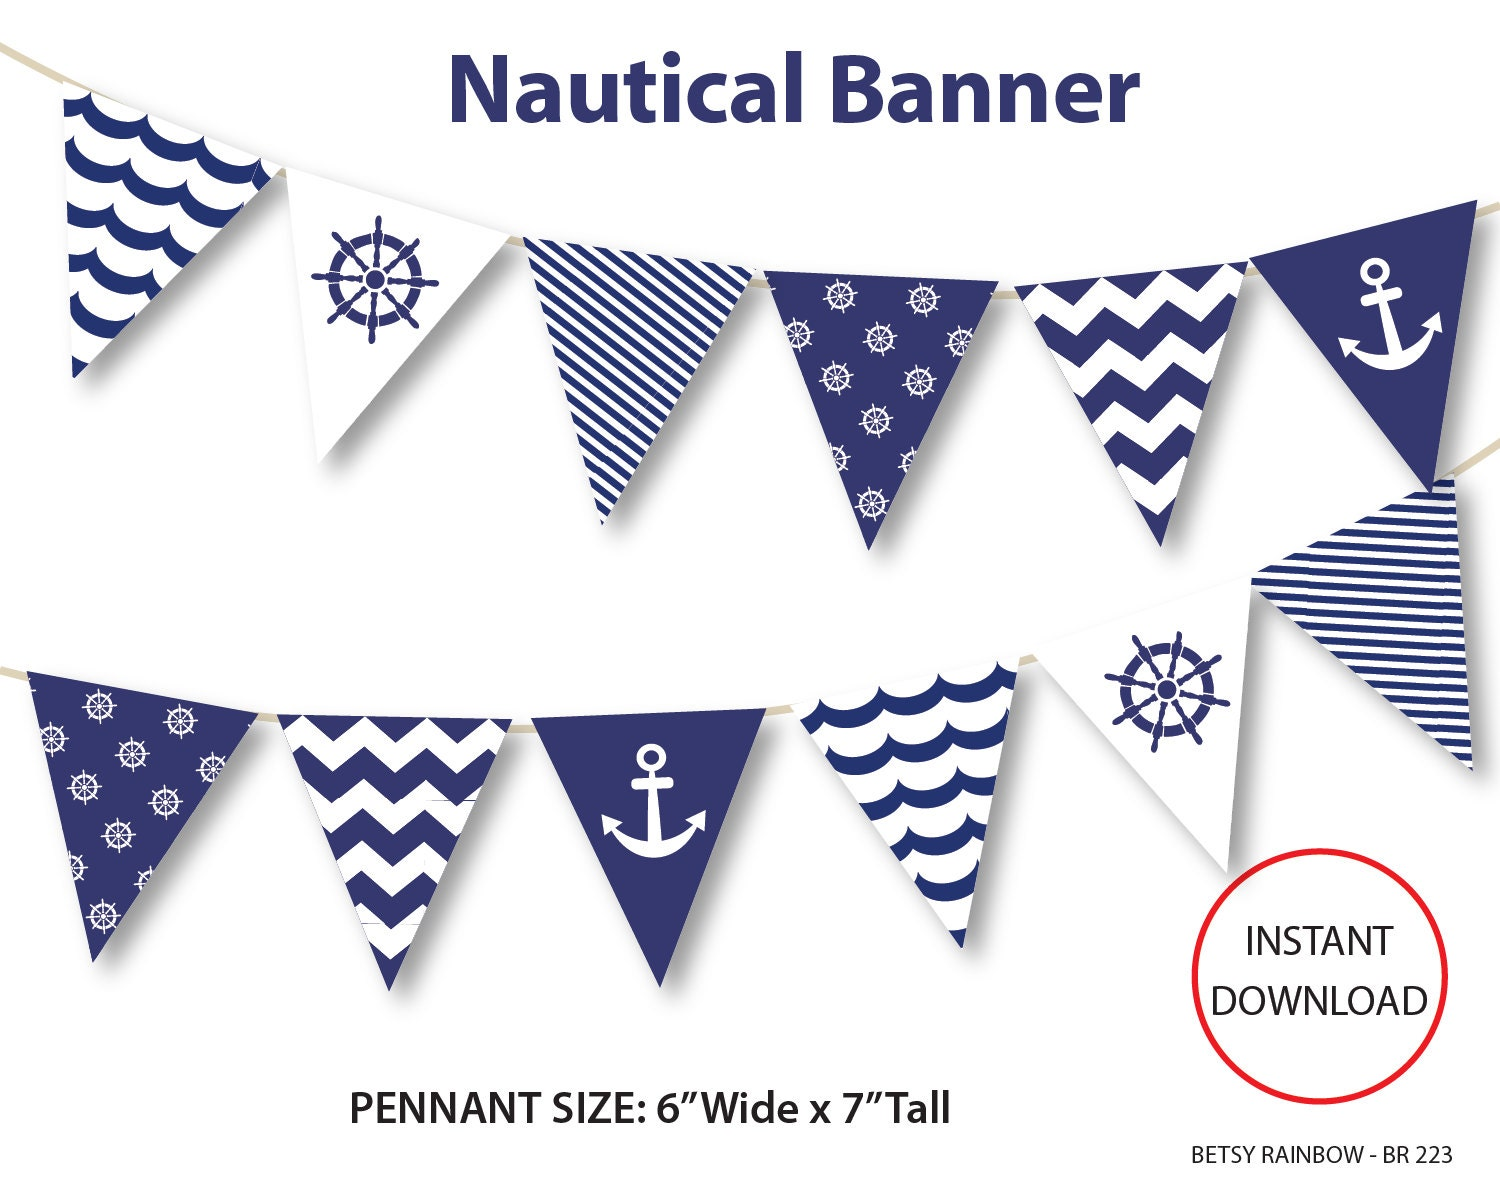 Birthday Party Themes as well 500 Silent Auction Basket Ideas also N 5xtm7 also 1997246 also Beach Themed Wall Hanging. on nautical party items